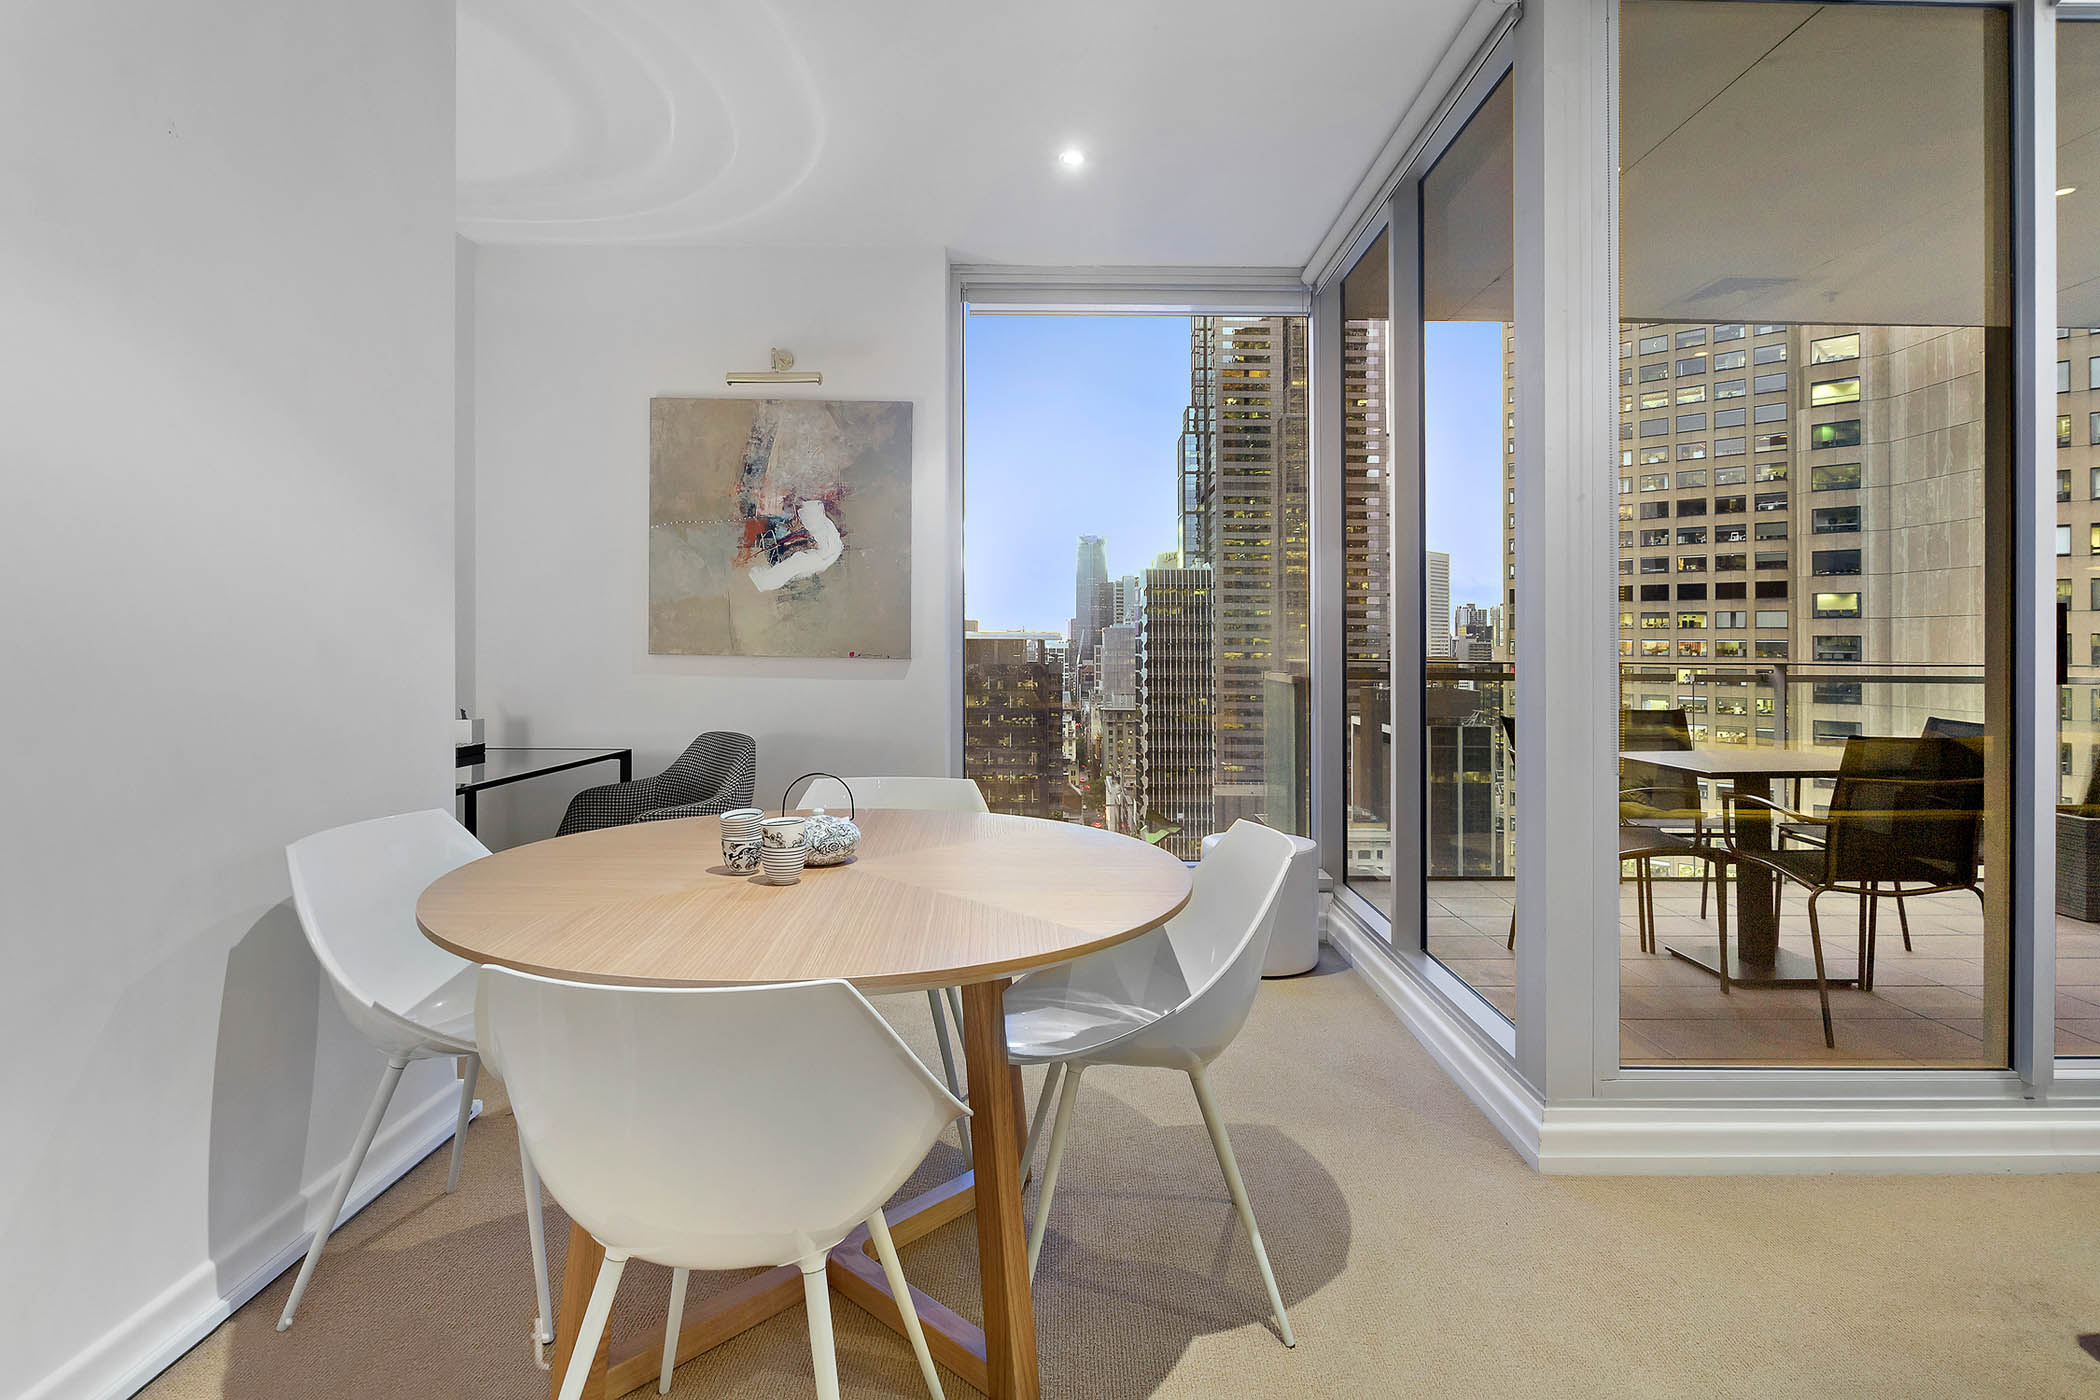 1804-31-spring-street-melbourne-student-accommodation-Melbourne-Dining-Table-With-Chairs-Unilodgers